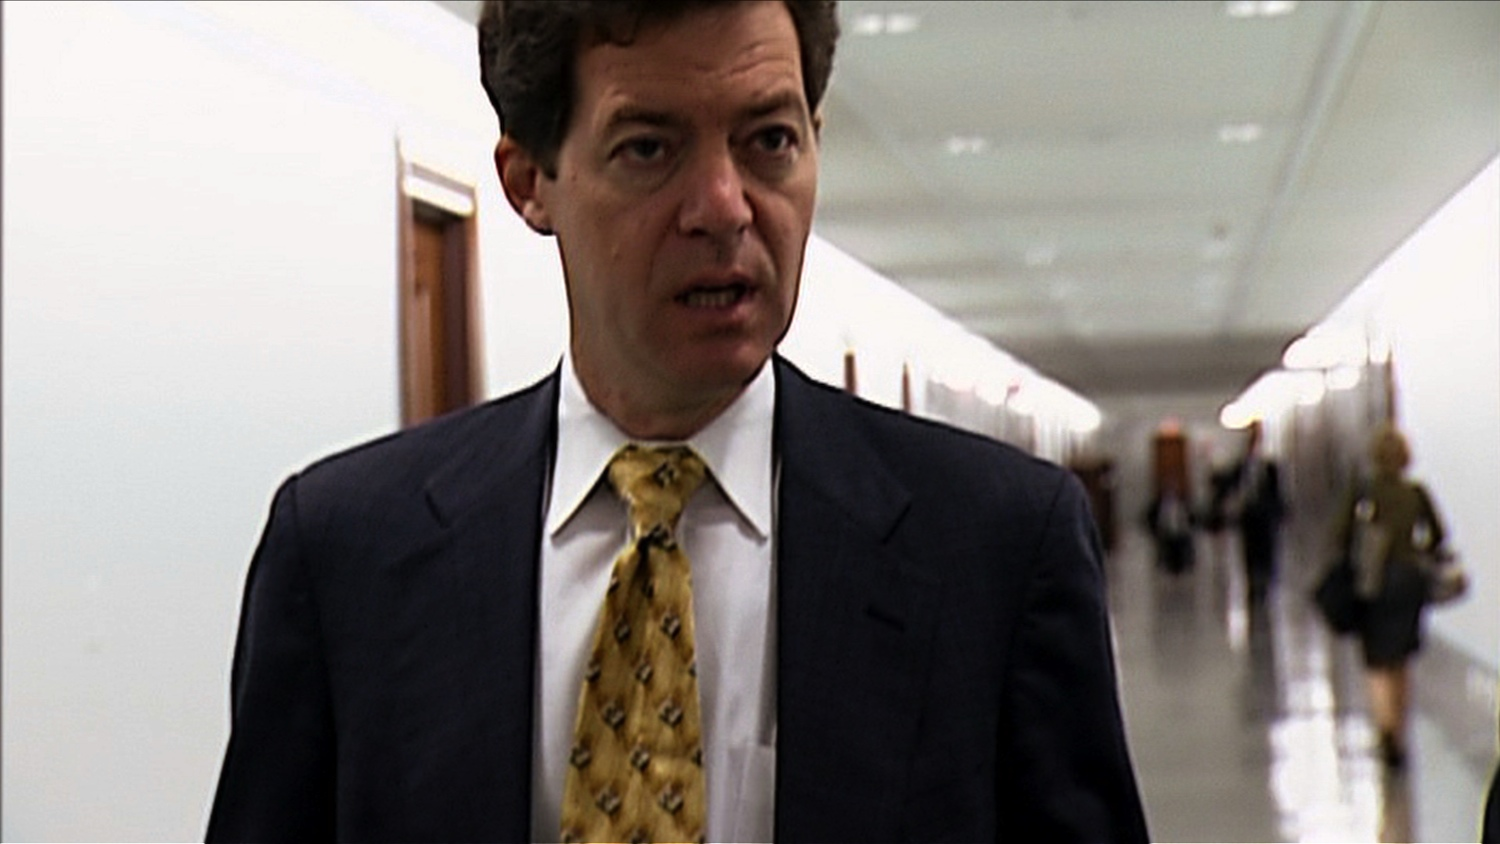 HDWN_02_MAC_HD_Brownback Walks 03.jpeg